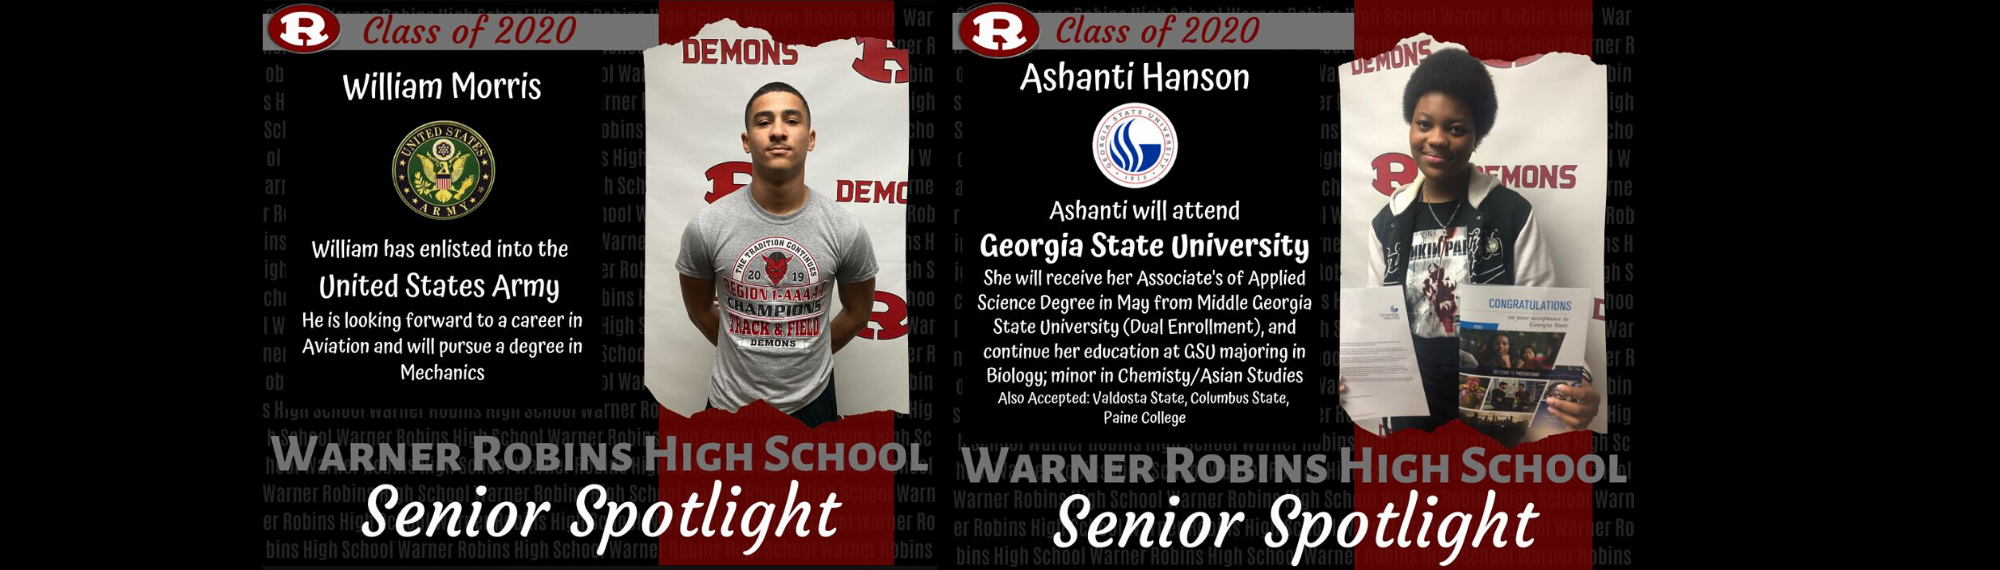 Senior Spotlight 3